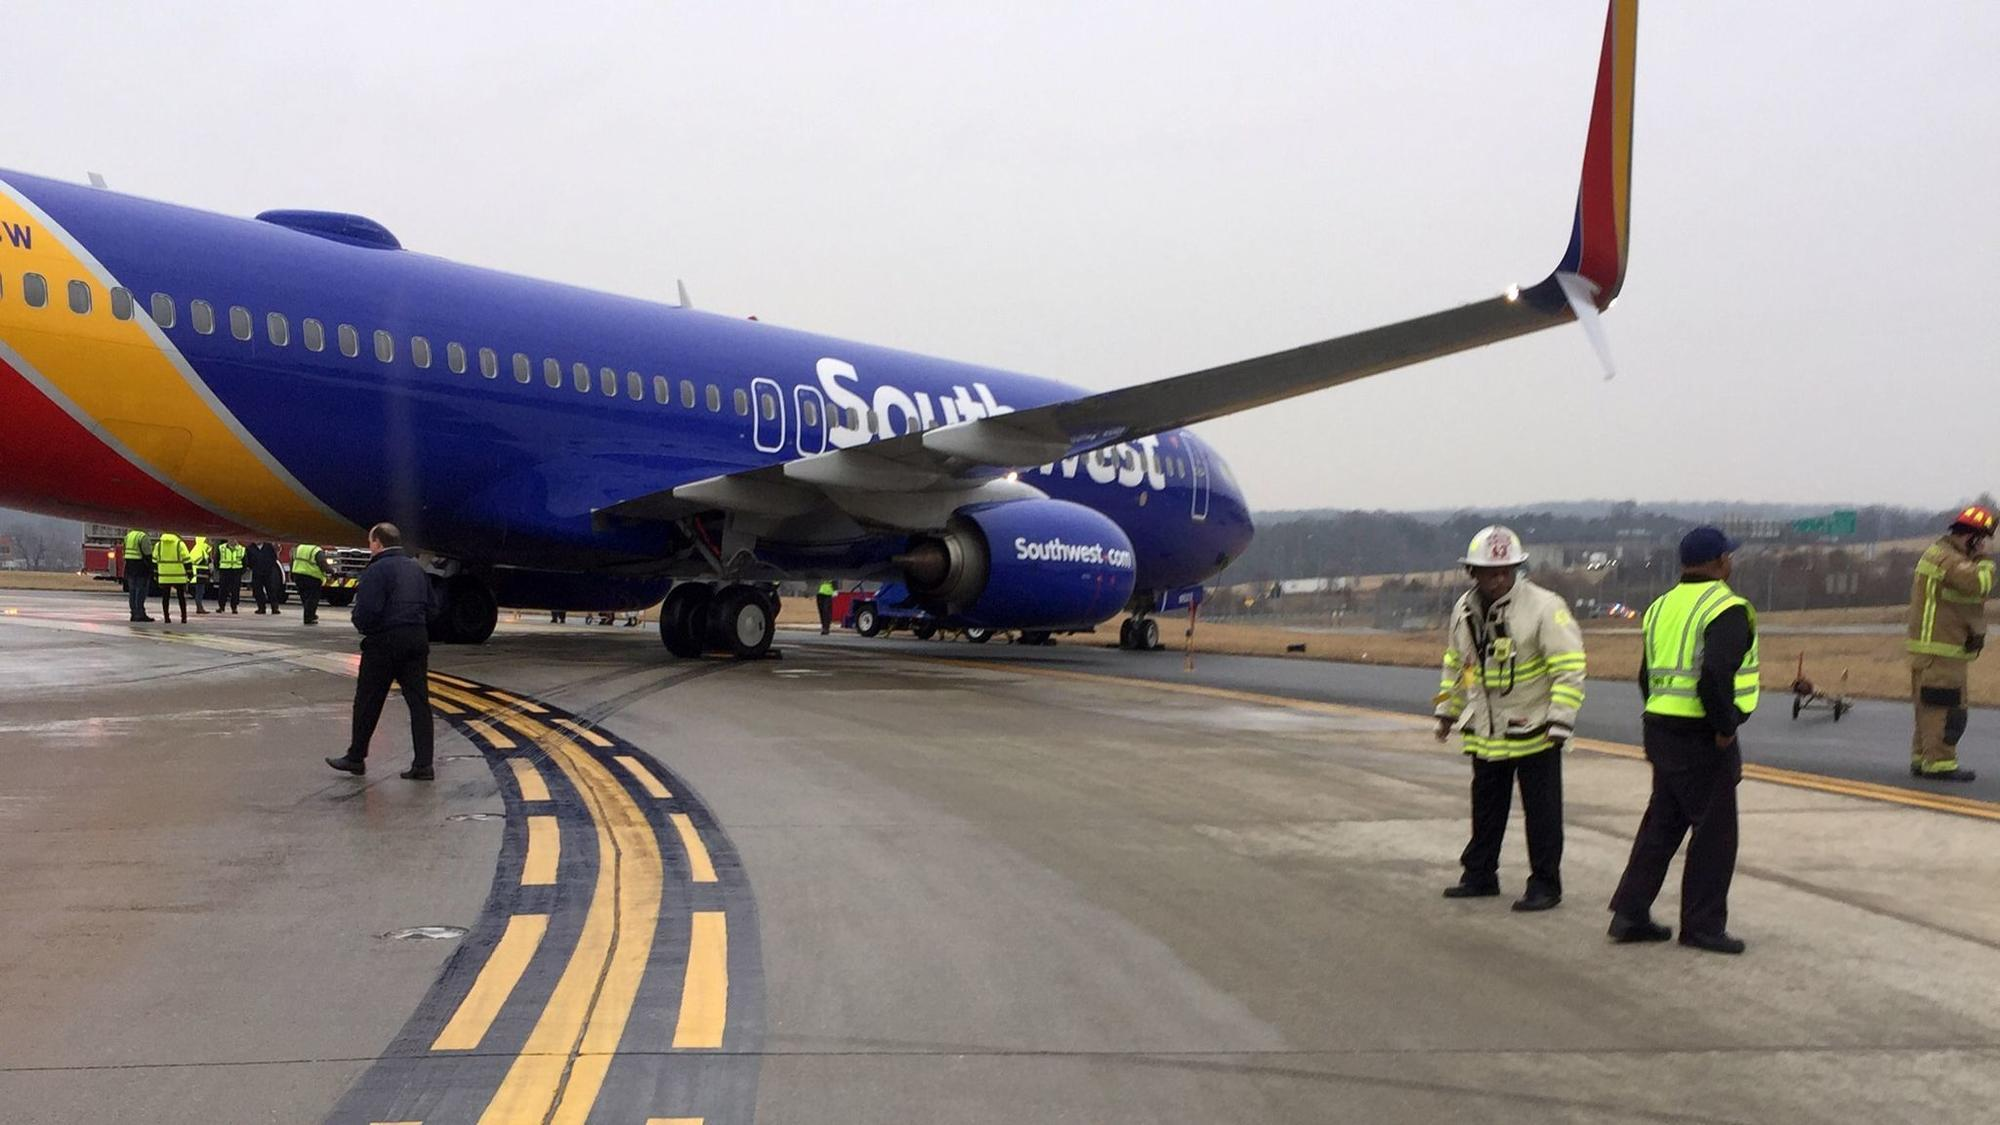 Southwest Plane Slips Before Takeoff At Bwi Airport Baltimore Sun